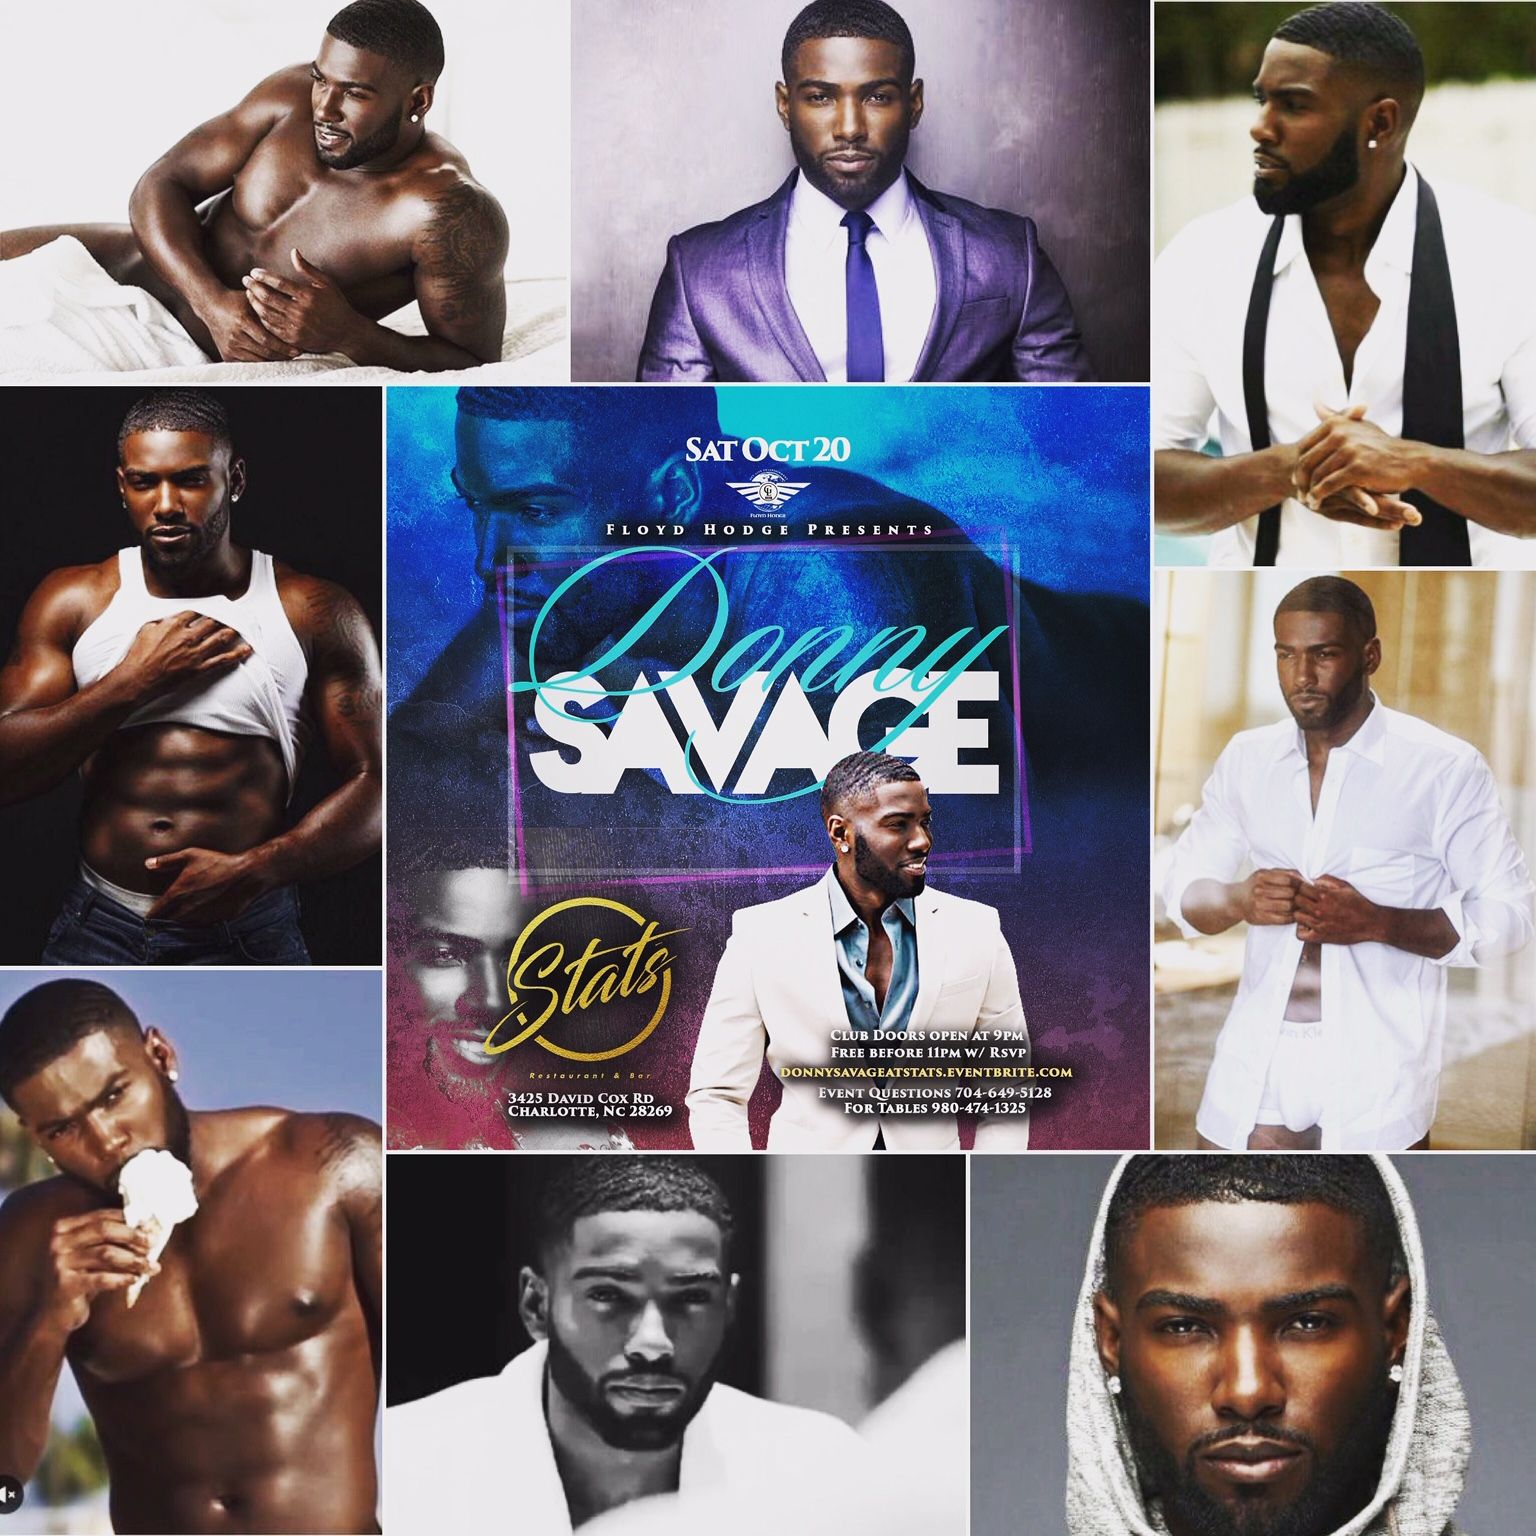 Donny Savage Collage